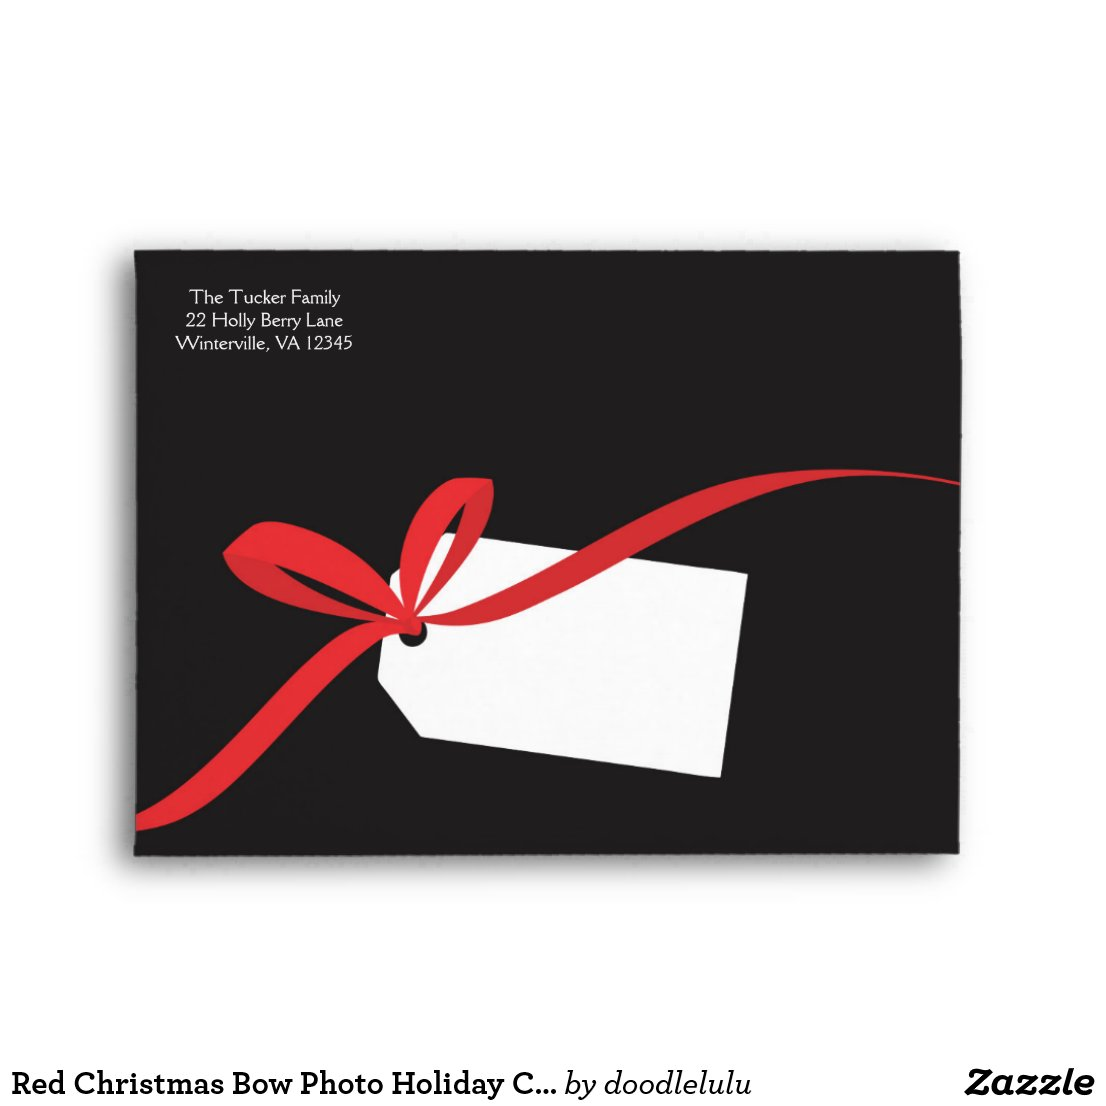 Red Christmas Bow Photo Holiday Card Envelope